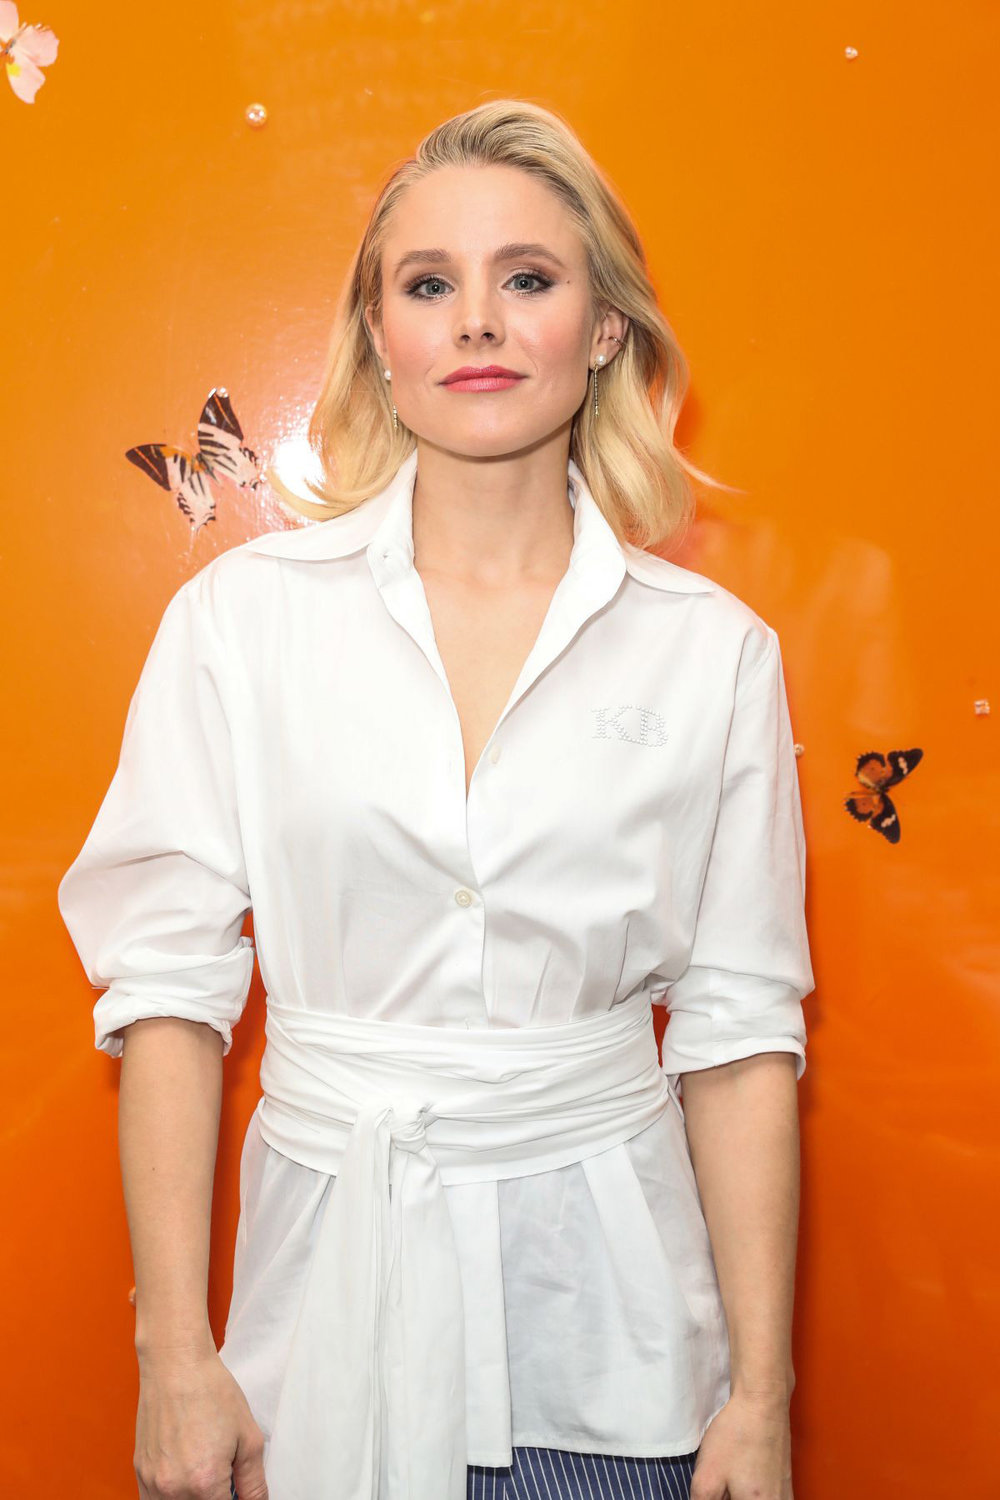 Kristen Bell at the TOME dinner in Los Angeles wearing the Pearl Shirley Drops